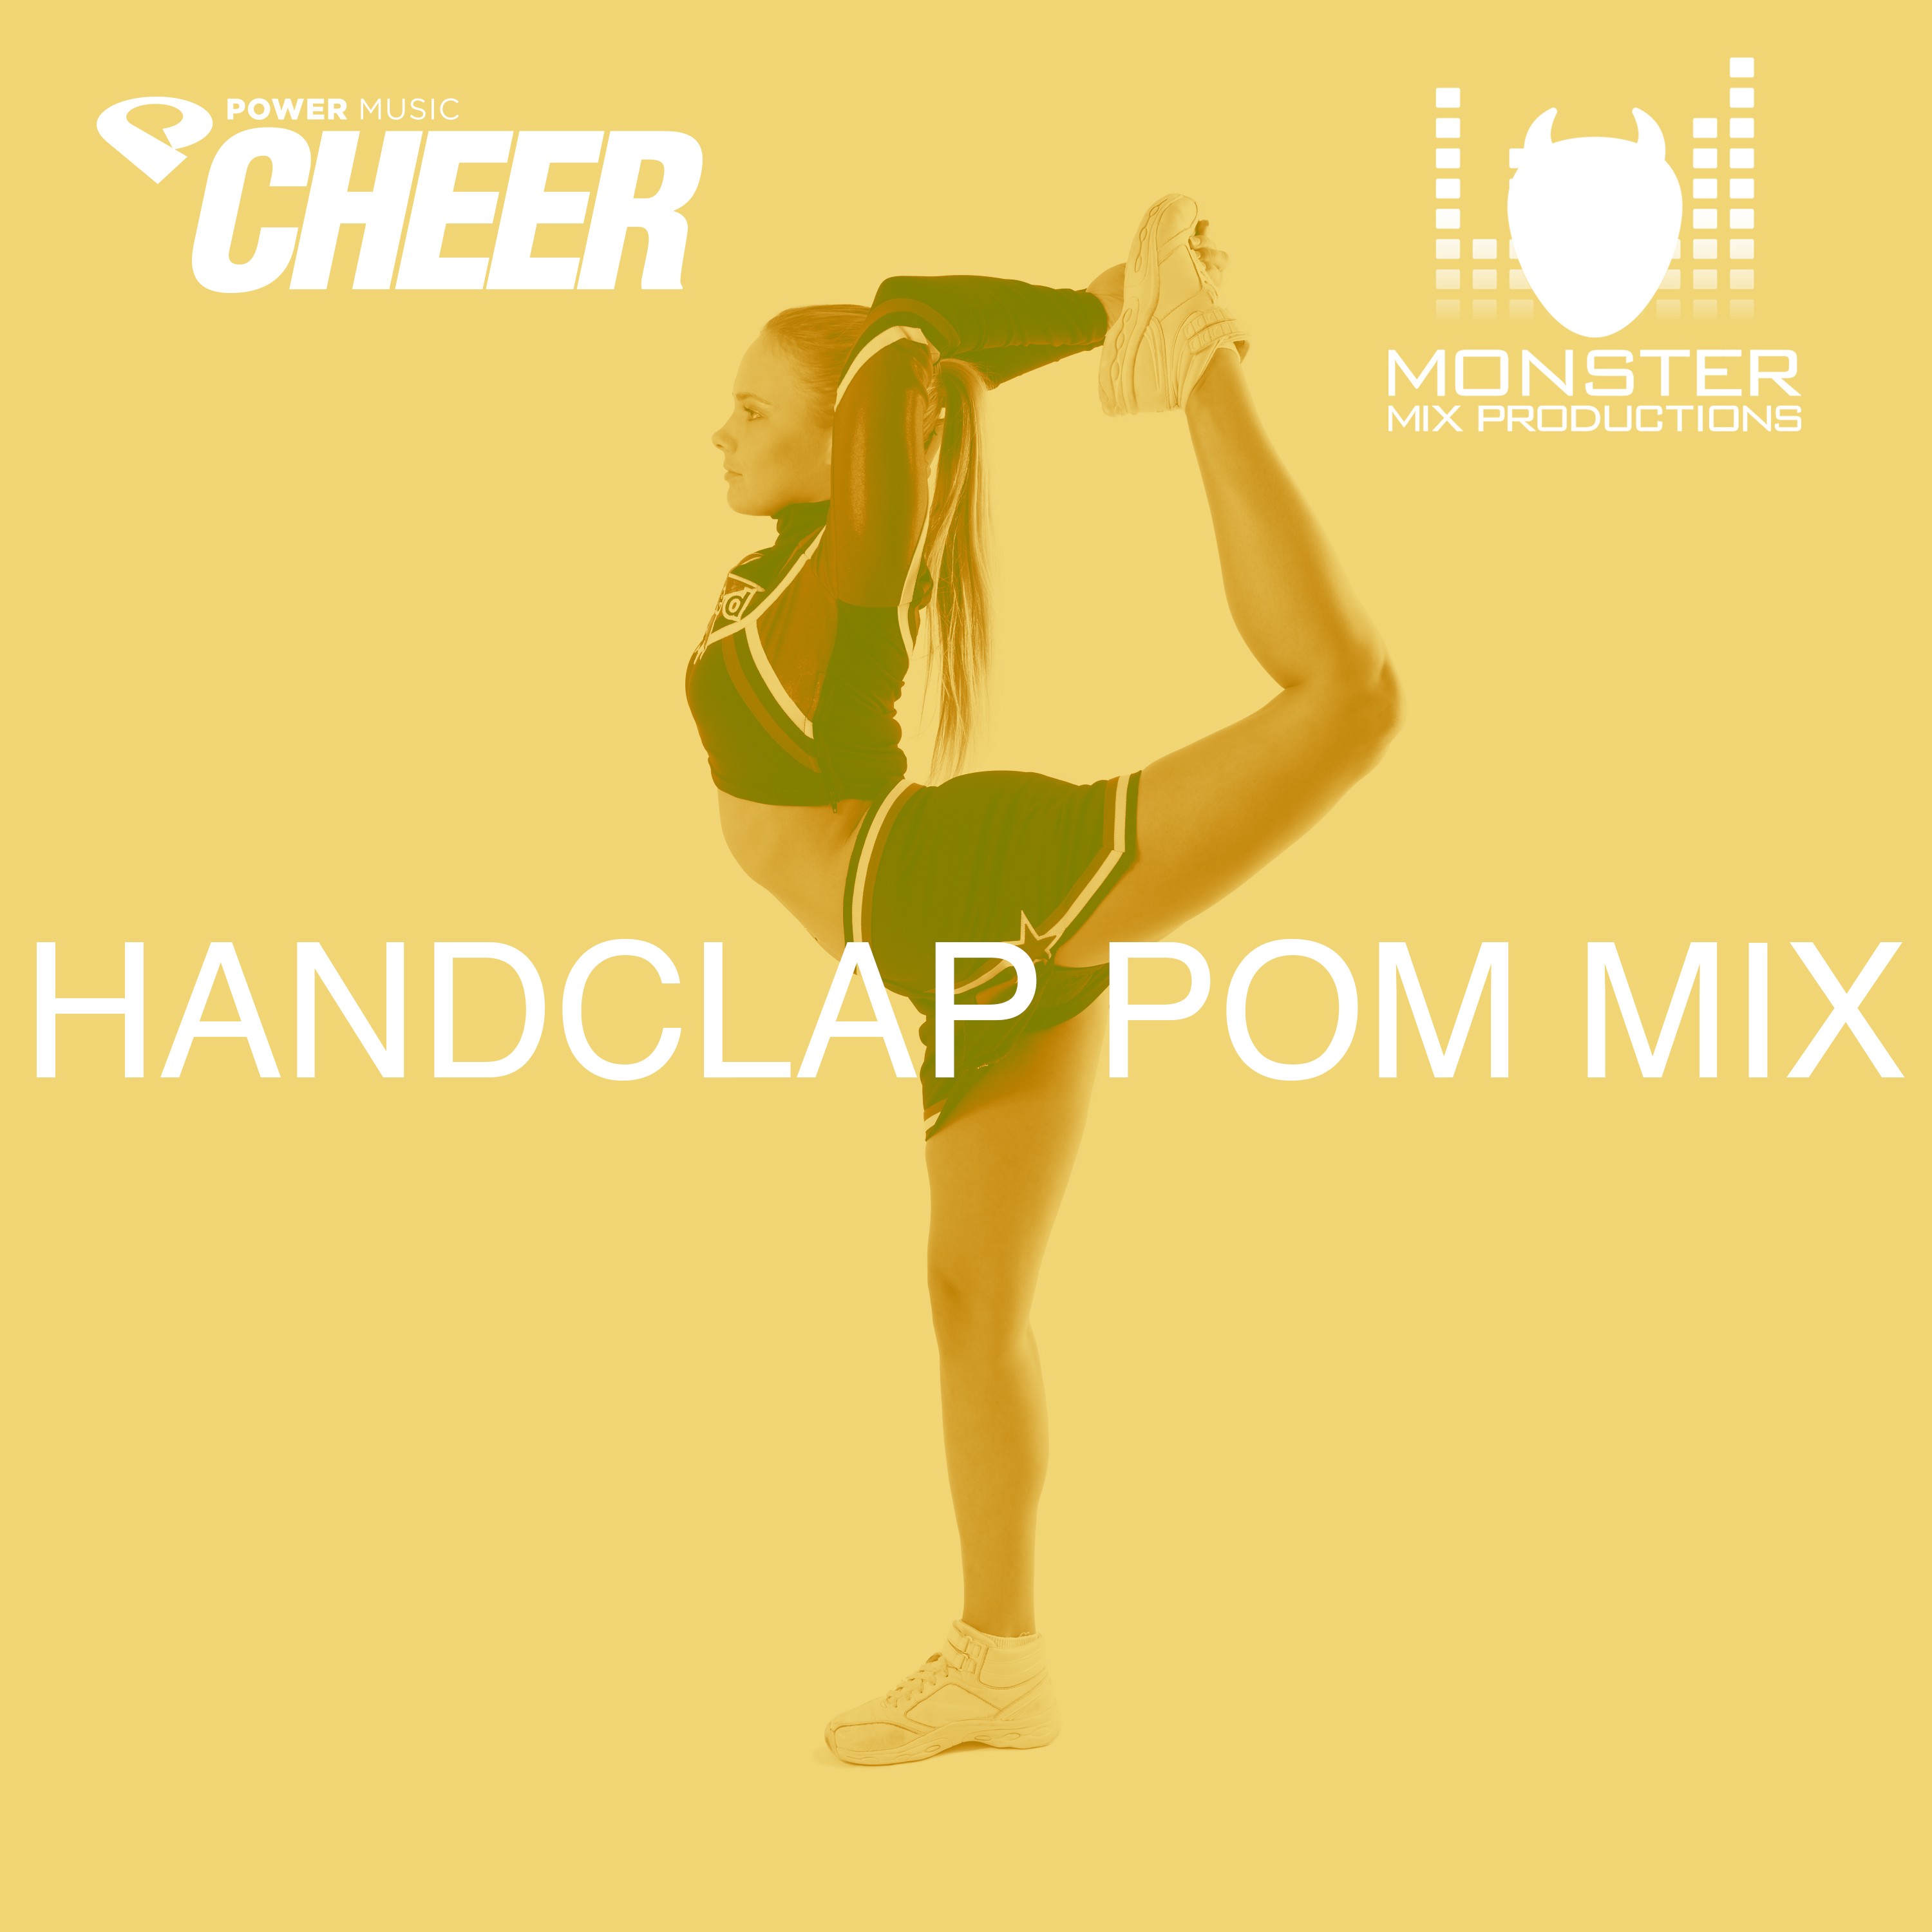 Handclap Pom Mix Mmp Remix That i can make your hands clap that i can make your hands clap (turn it up) that i can make your hands clap. handclap pom mix mmp remix